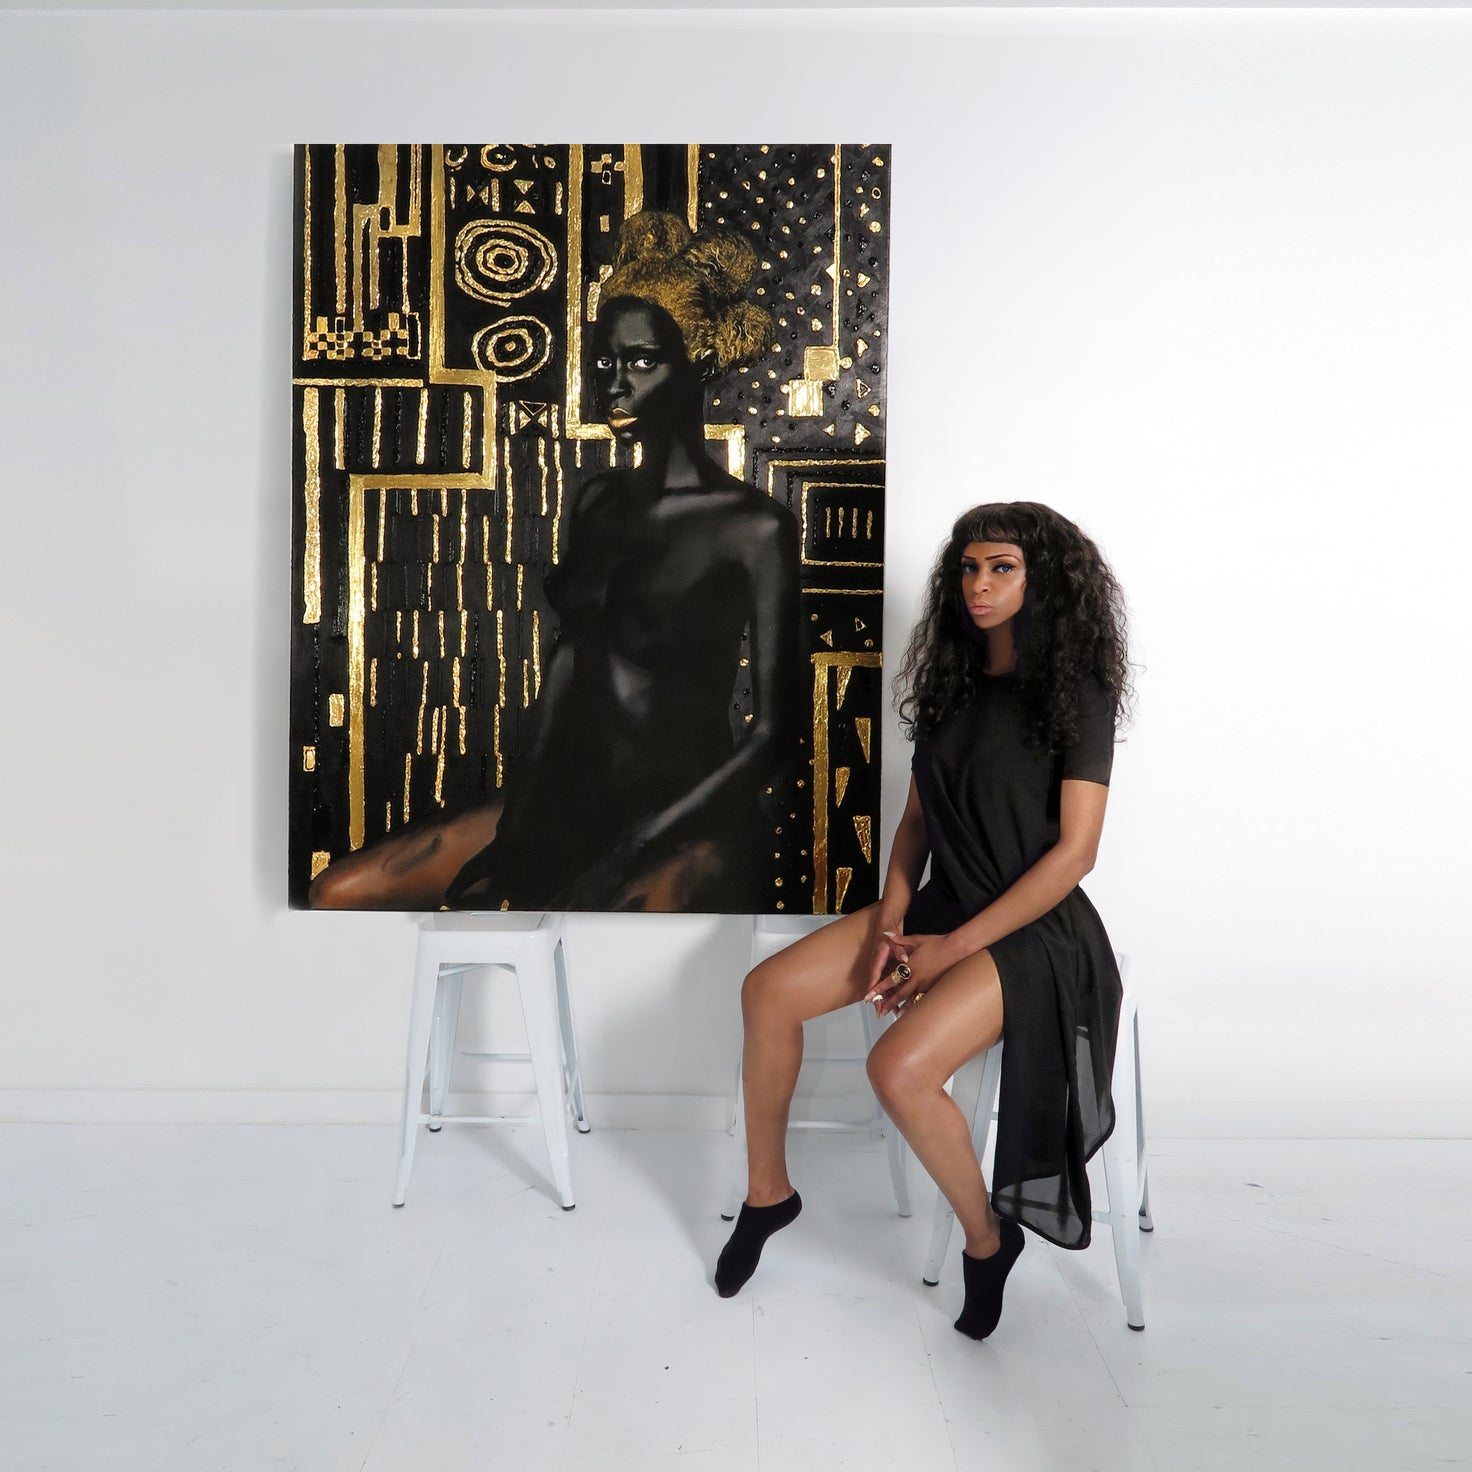 [Sponsored] Black Girl Brilliance Project: Lina Iris Viktor On Walking In Your Truth To Release The Beauty Within